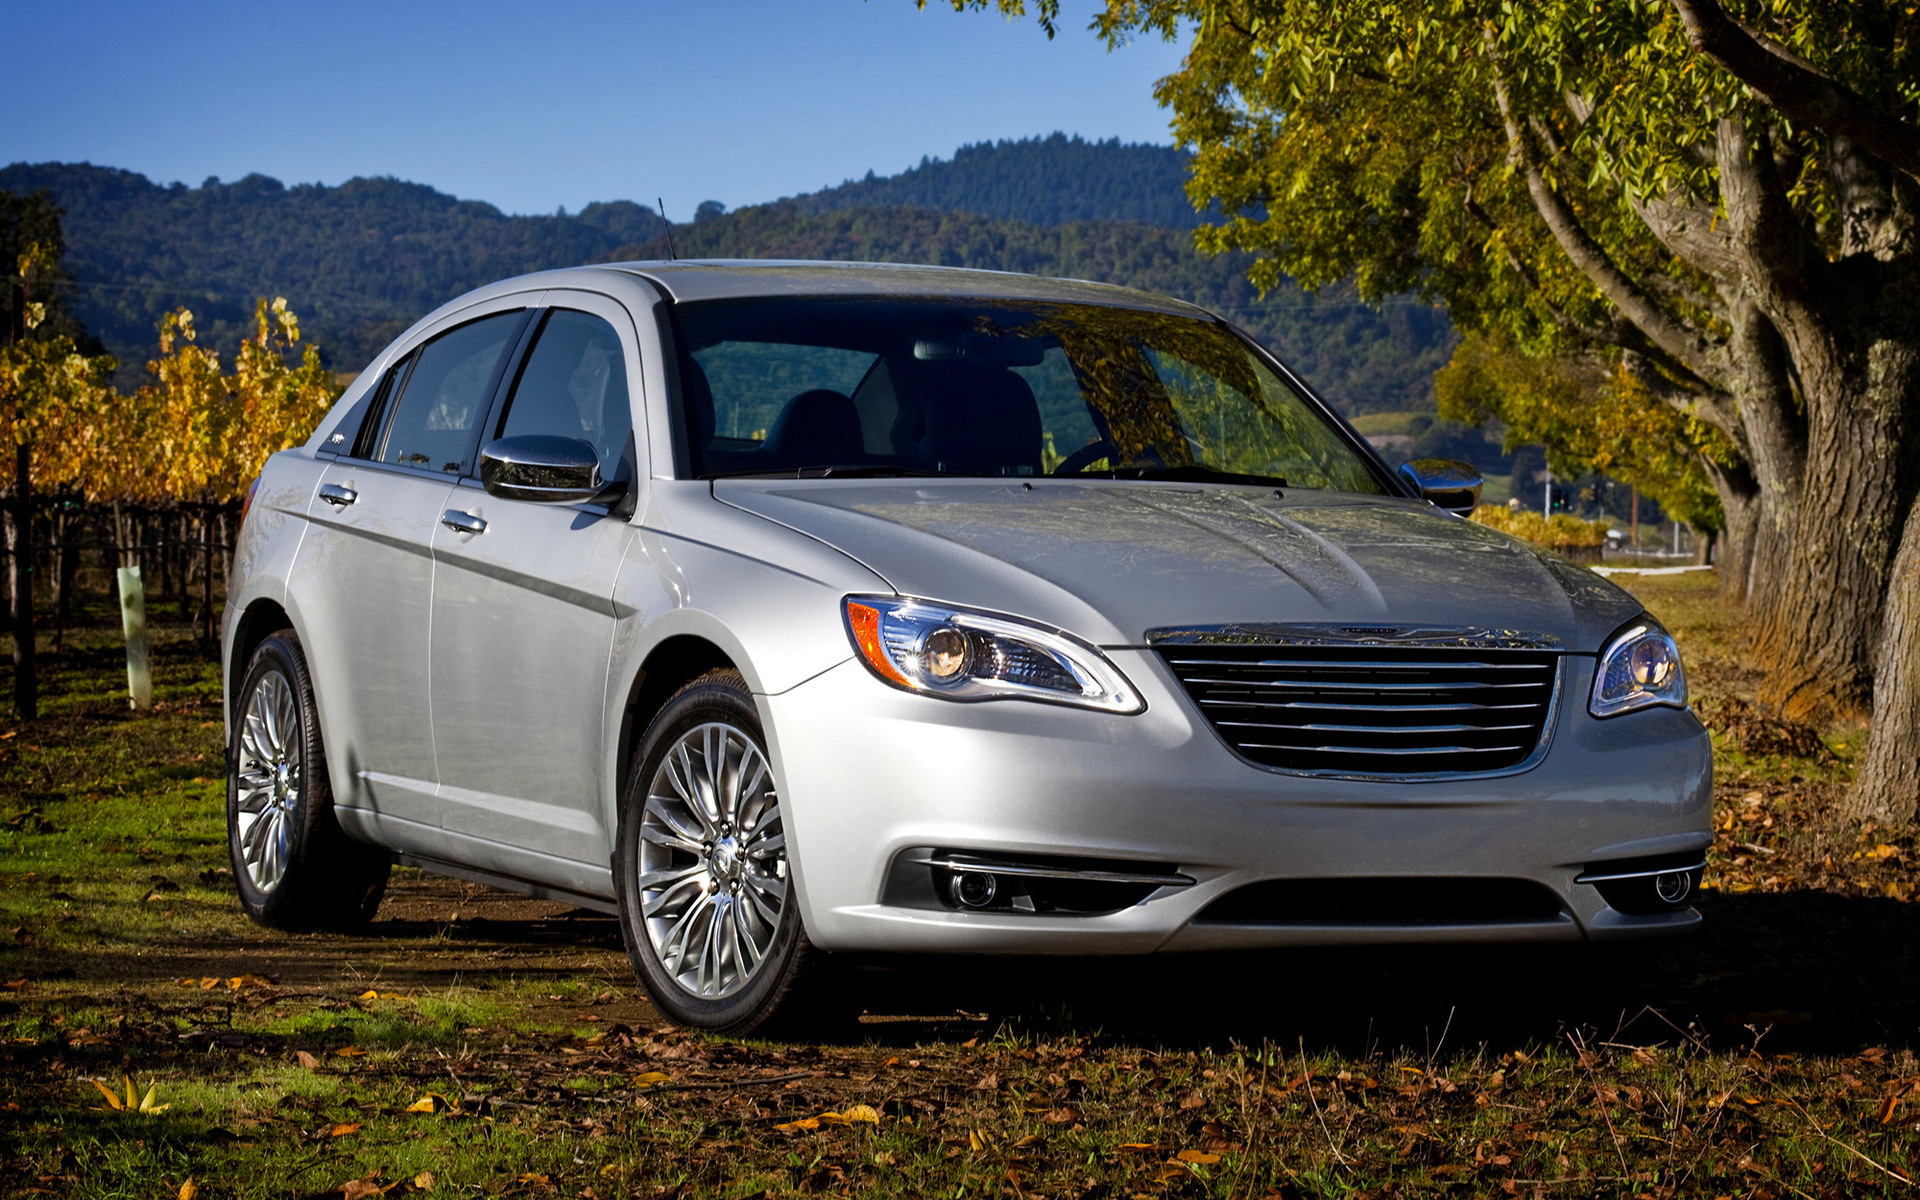 Worksheet. Chrysler 200 2010 Wallpapers and HD Images  Car Pixel